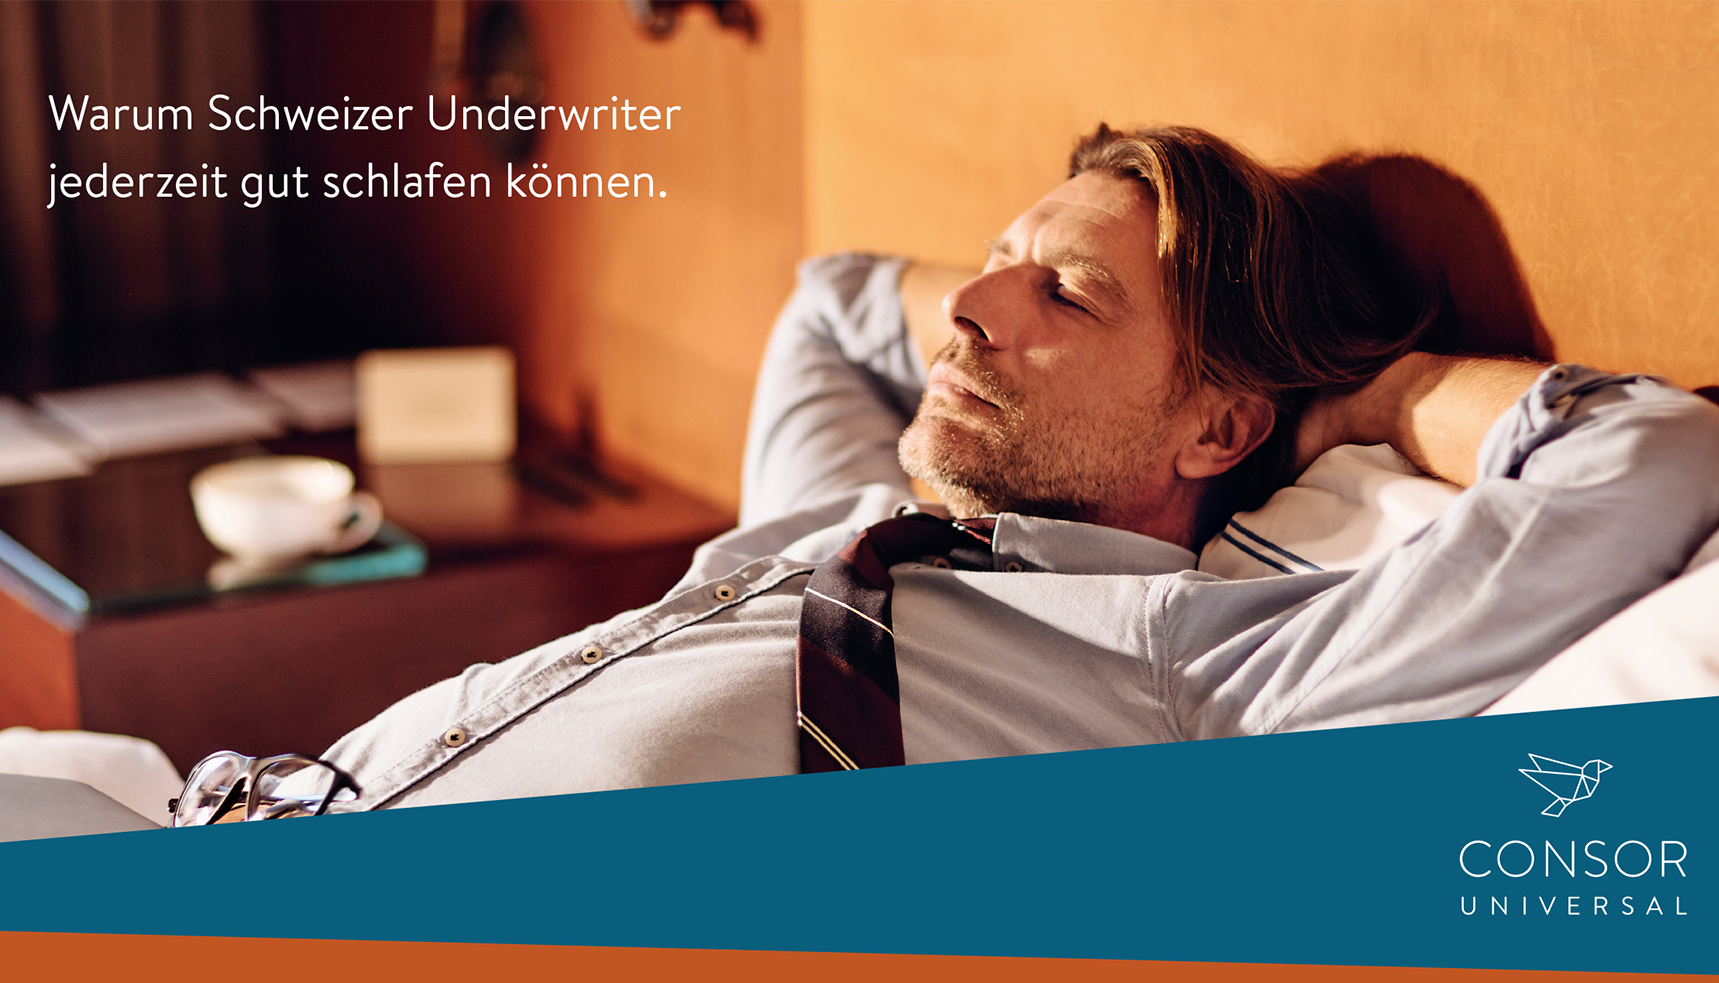 Why Swiss Underwriters Can Sleep Well At All Times